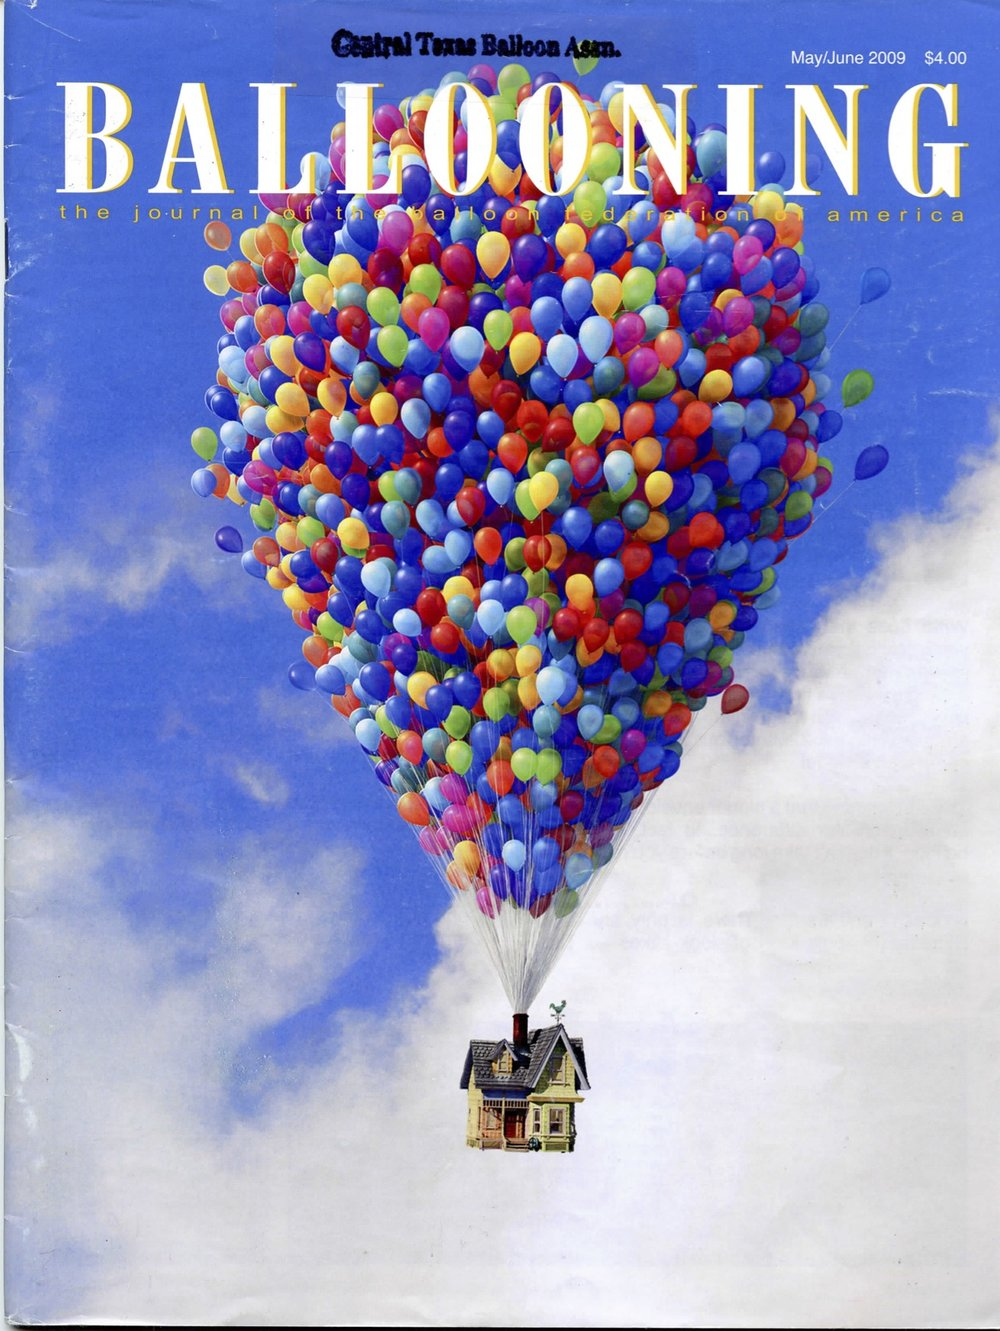 BFA_Magazine_covers May 2009.jpg